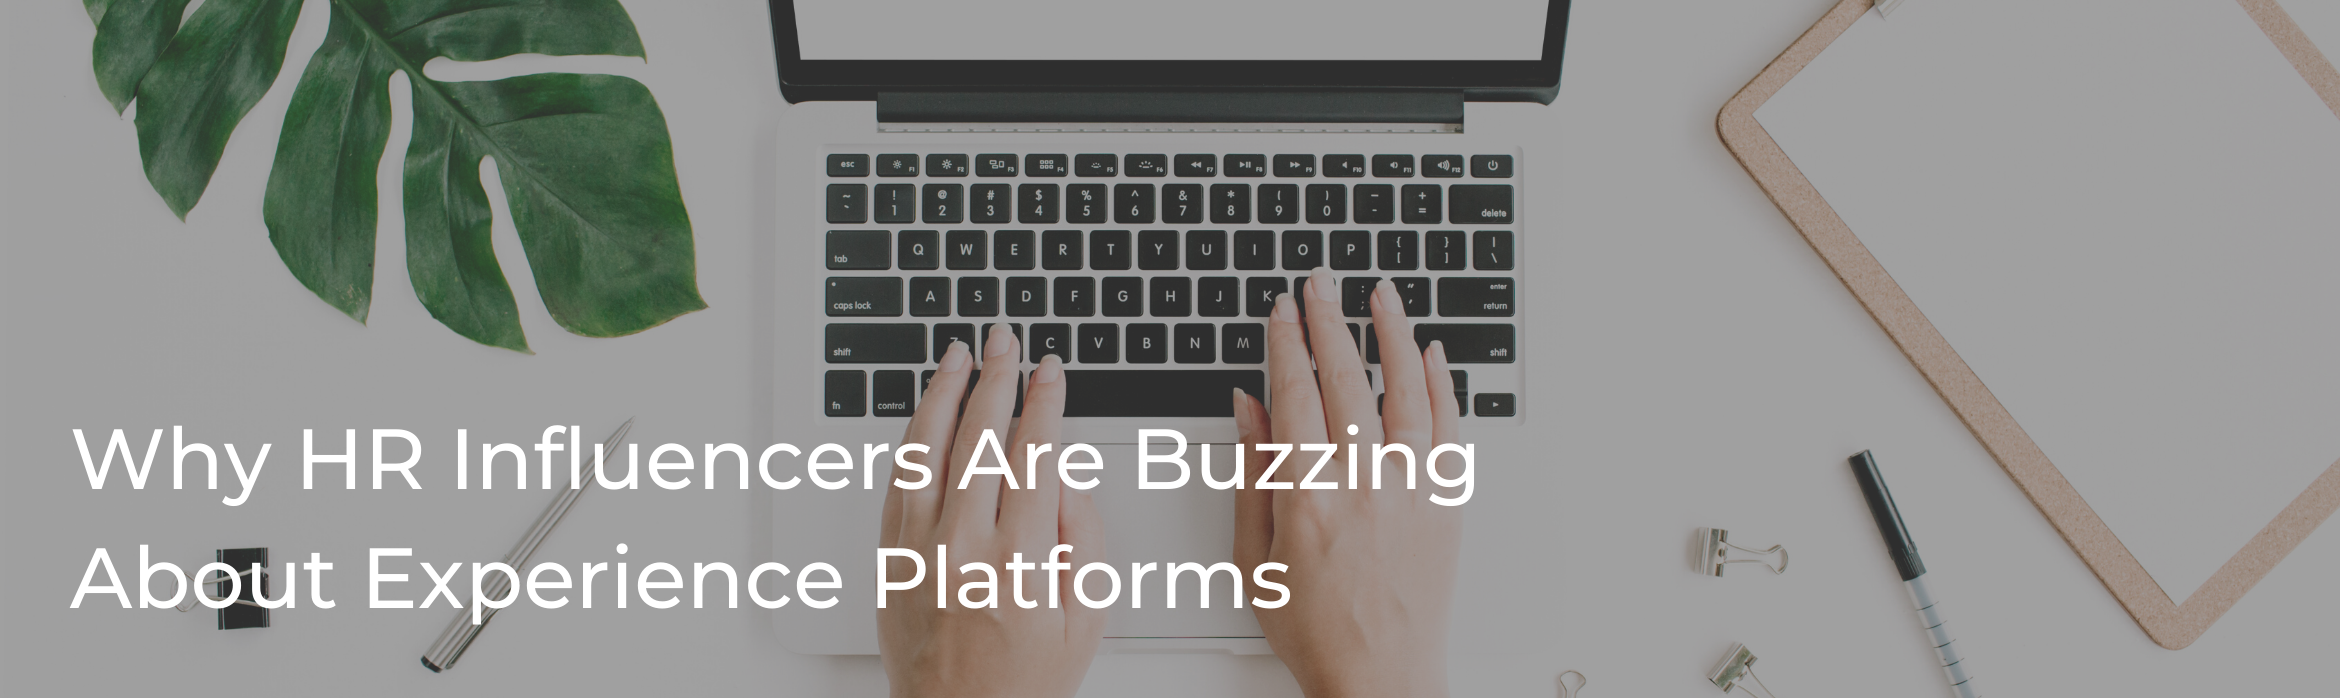 Why HR Influencers Are Buzzing About Experience Platforms